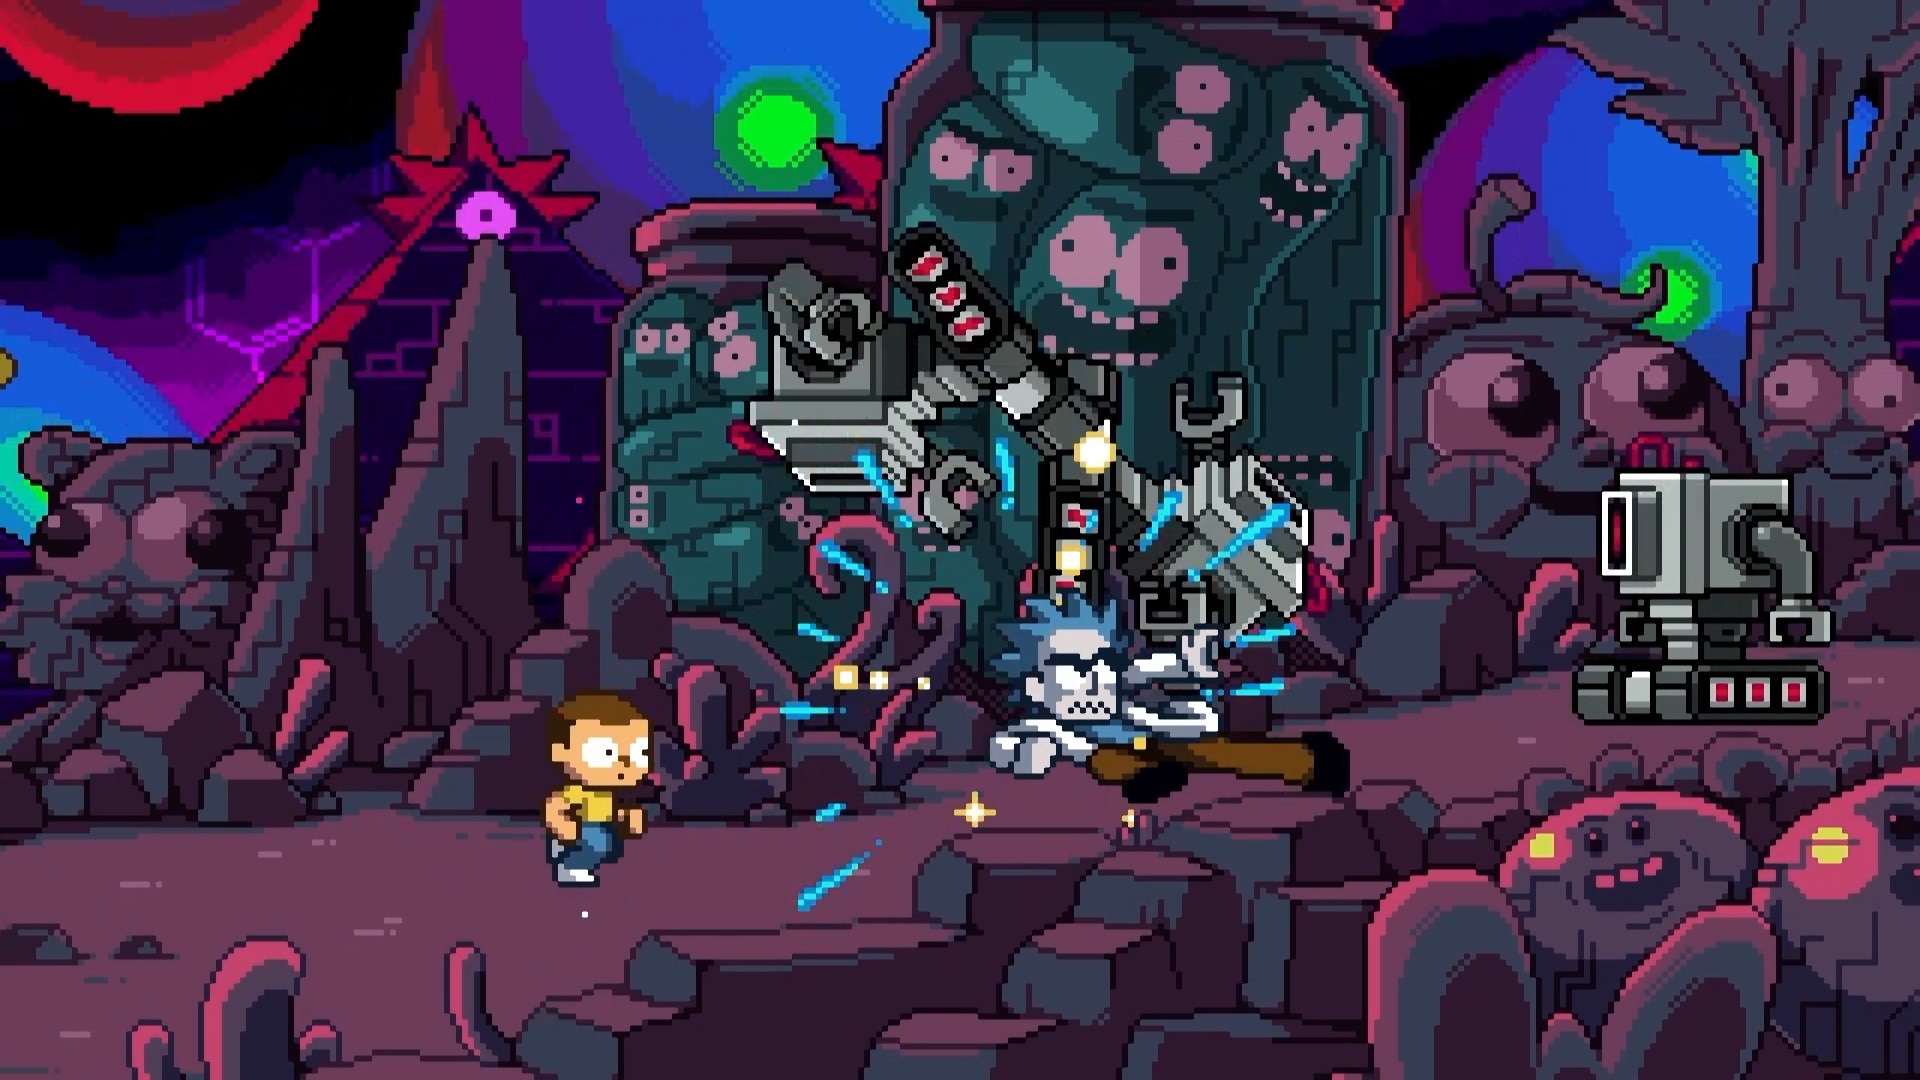 Rick + Morty In The Eternal Nightmare Machine